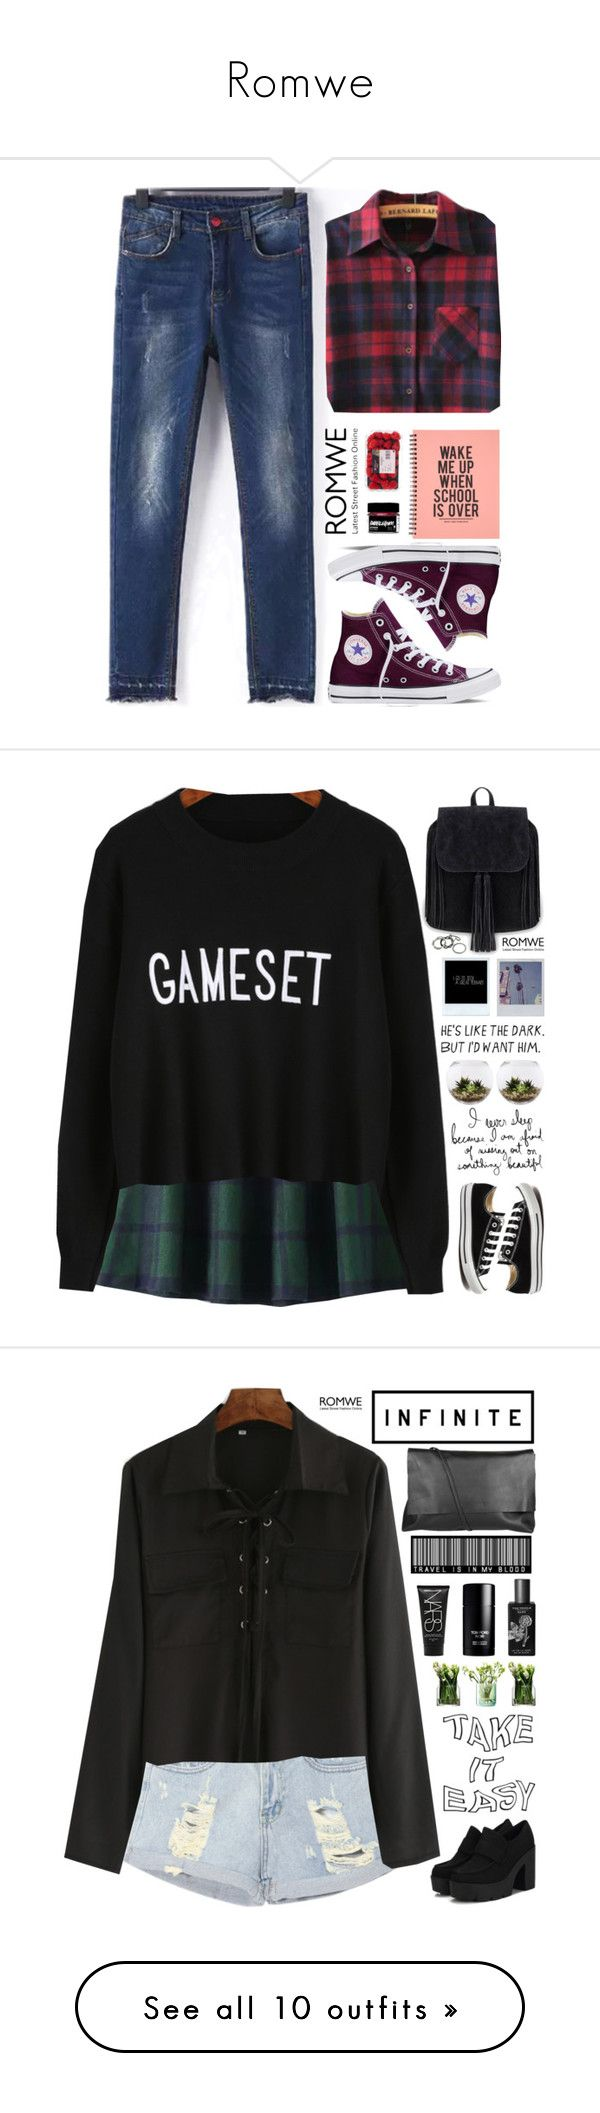 """Romwe"" by scarlett-morwenna ❤ liked on Polyvore featuring Converse, Home Essentials, LSA International, Arlington Milne, TokyoMilk, Tom Ford, NARS Cosmetics, Rebecca Minkoff, redrising and Steve Madden"